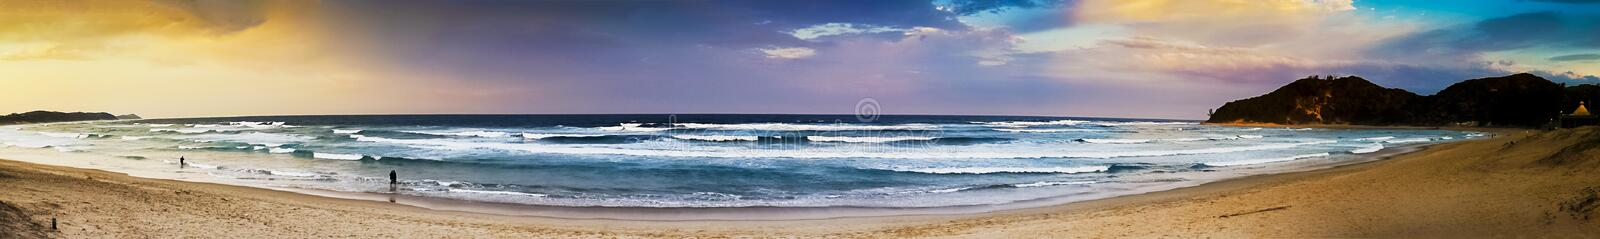 Seaside at Sunset - Panoramic view royalty free stock images